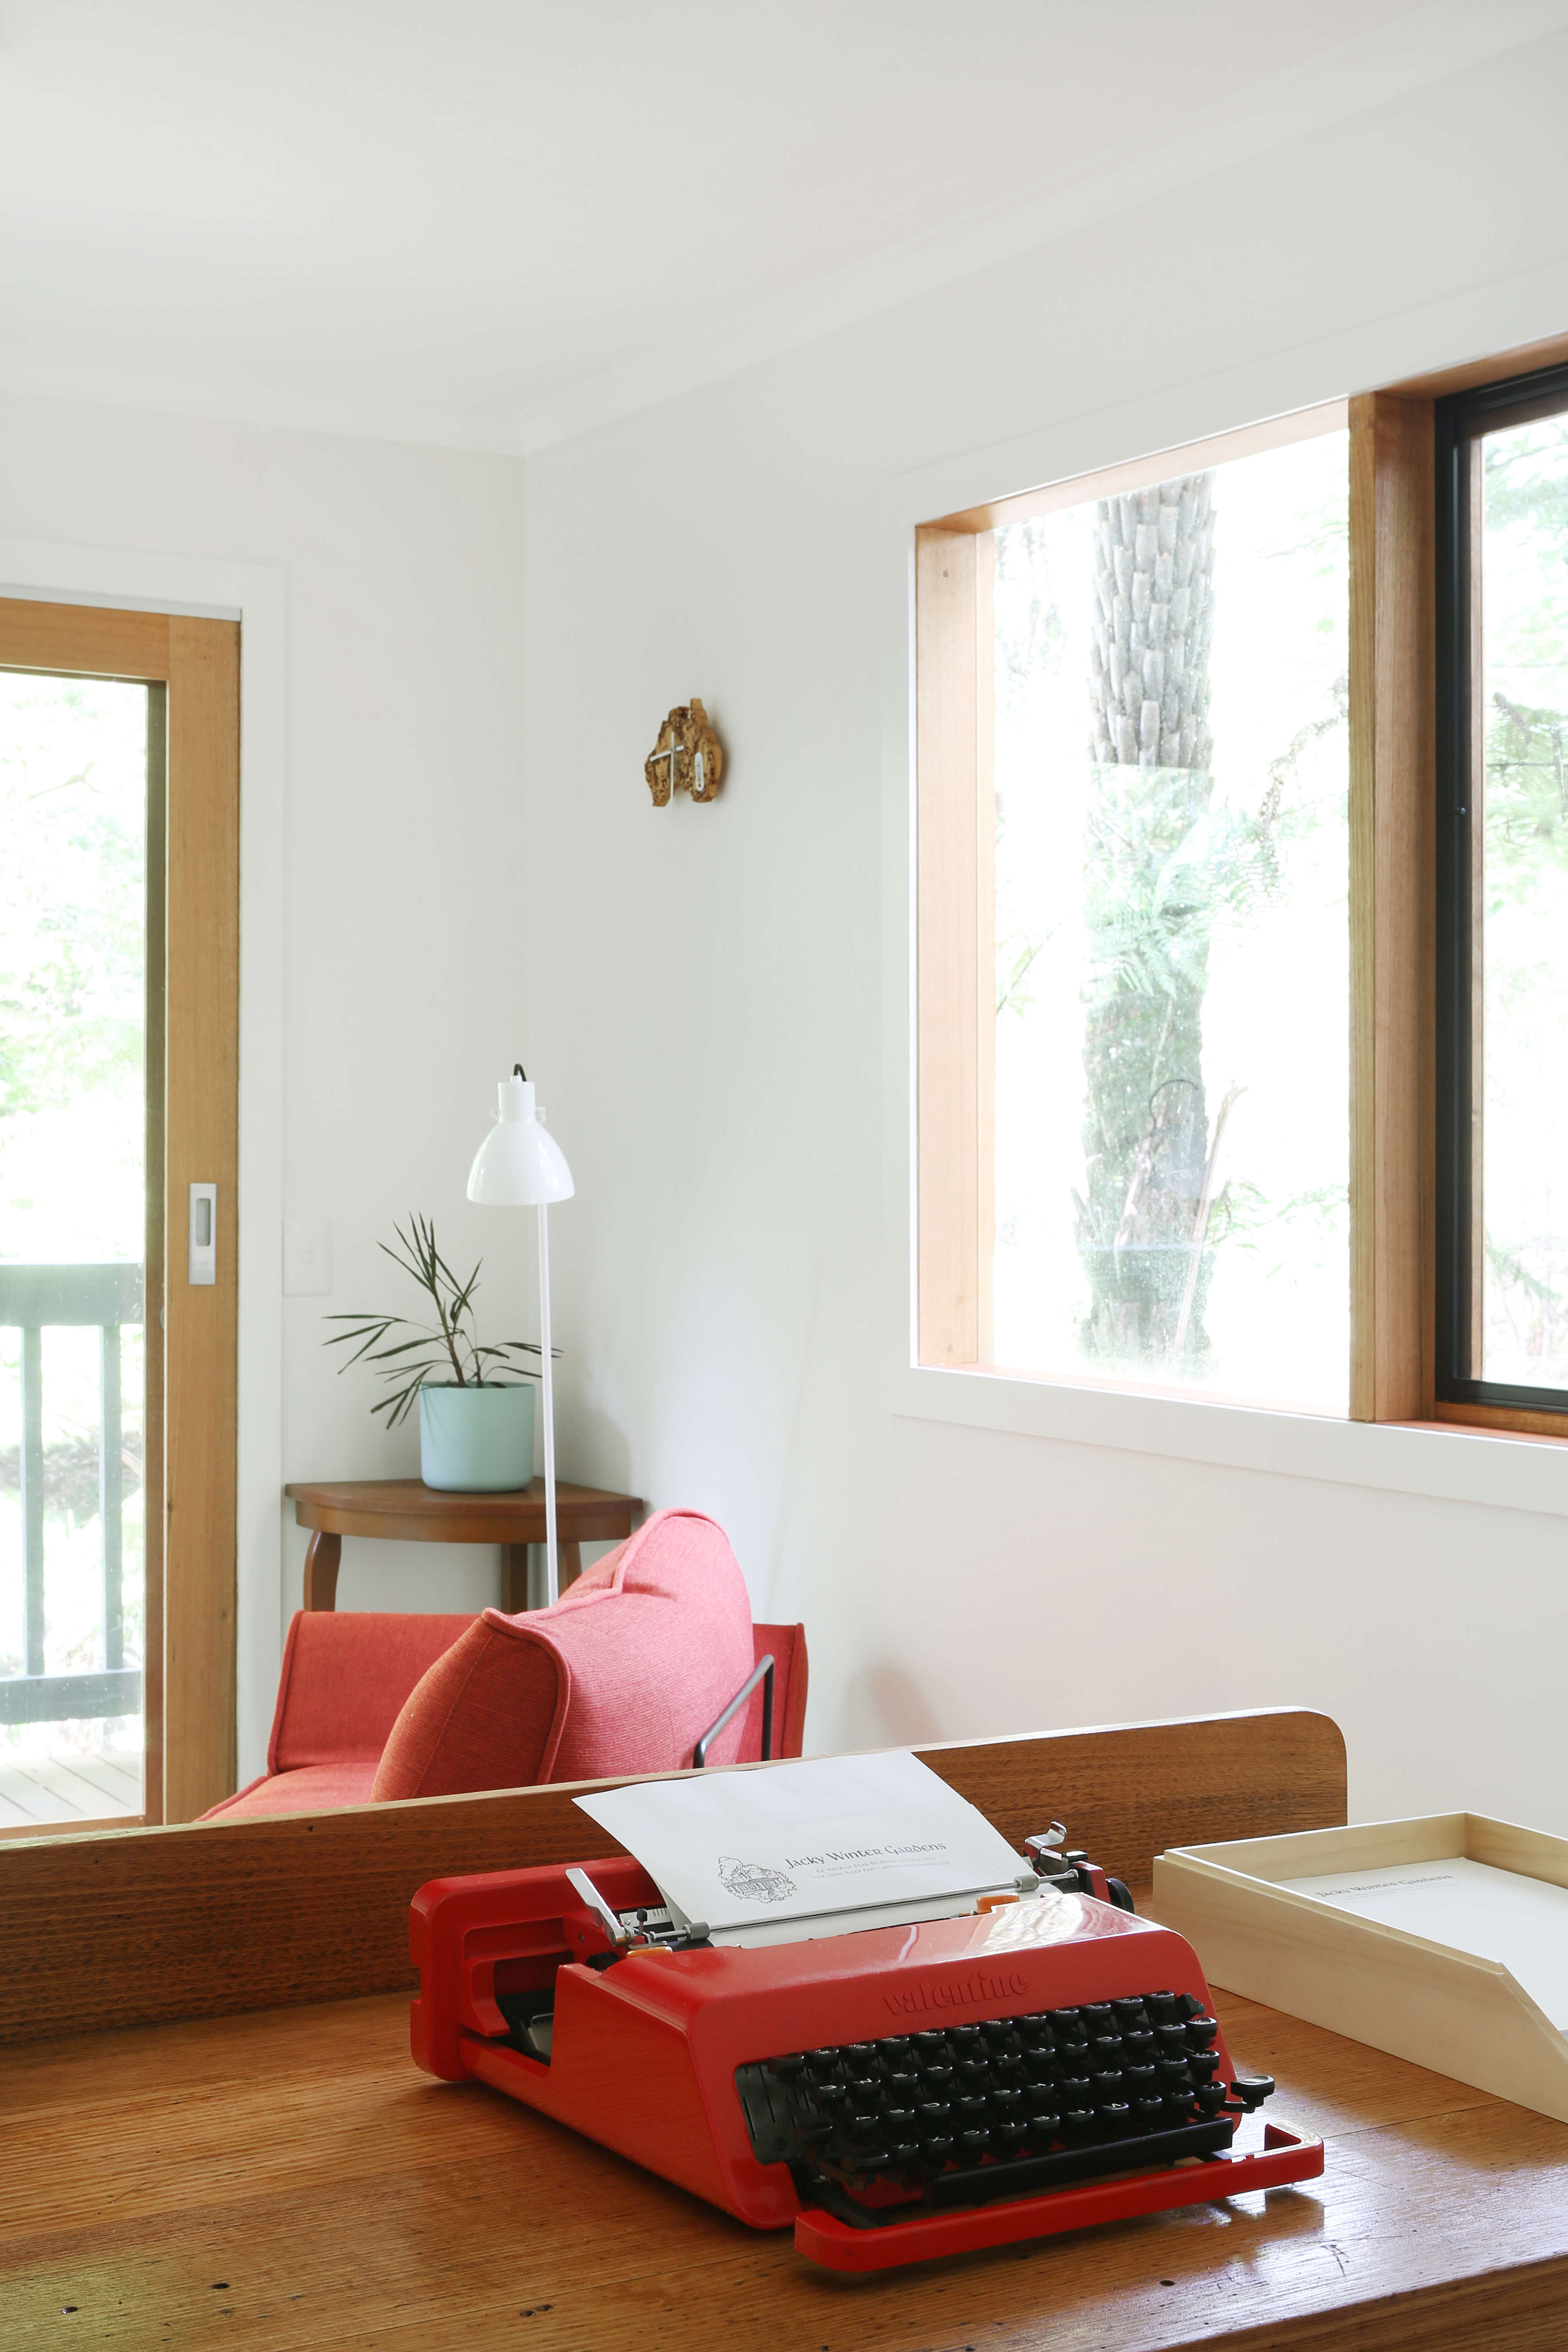 Olivetti Lipstick typewriter at Jackie Winter Gardens, a guesthouse and artist residency outside Melbourne, Australia, designed by Searah Trotter of Hearth; Rhiannon Taylor photo| Remodelista